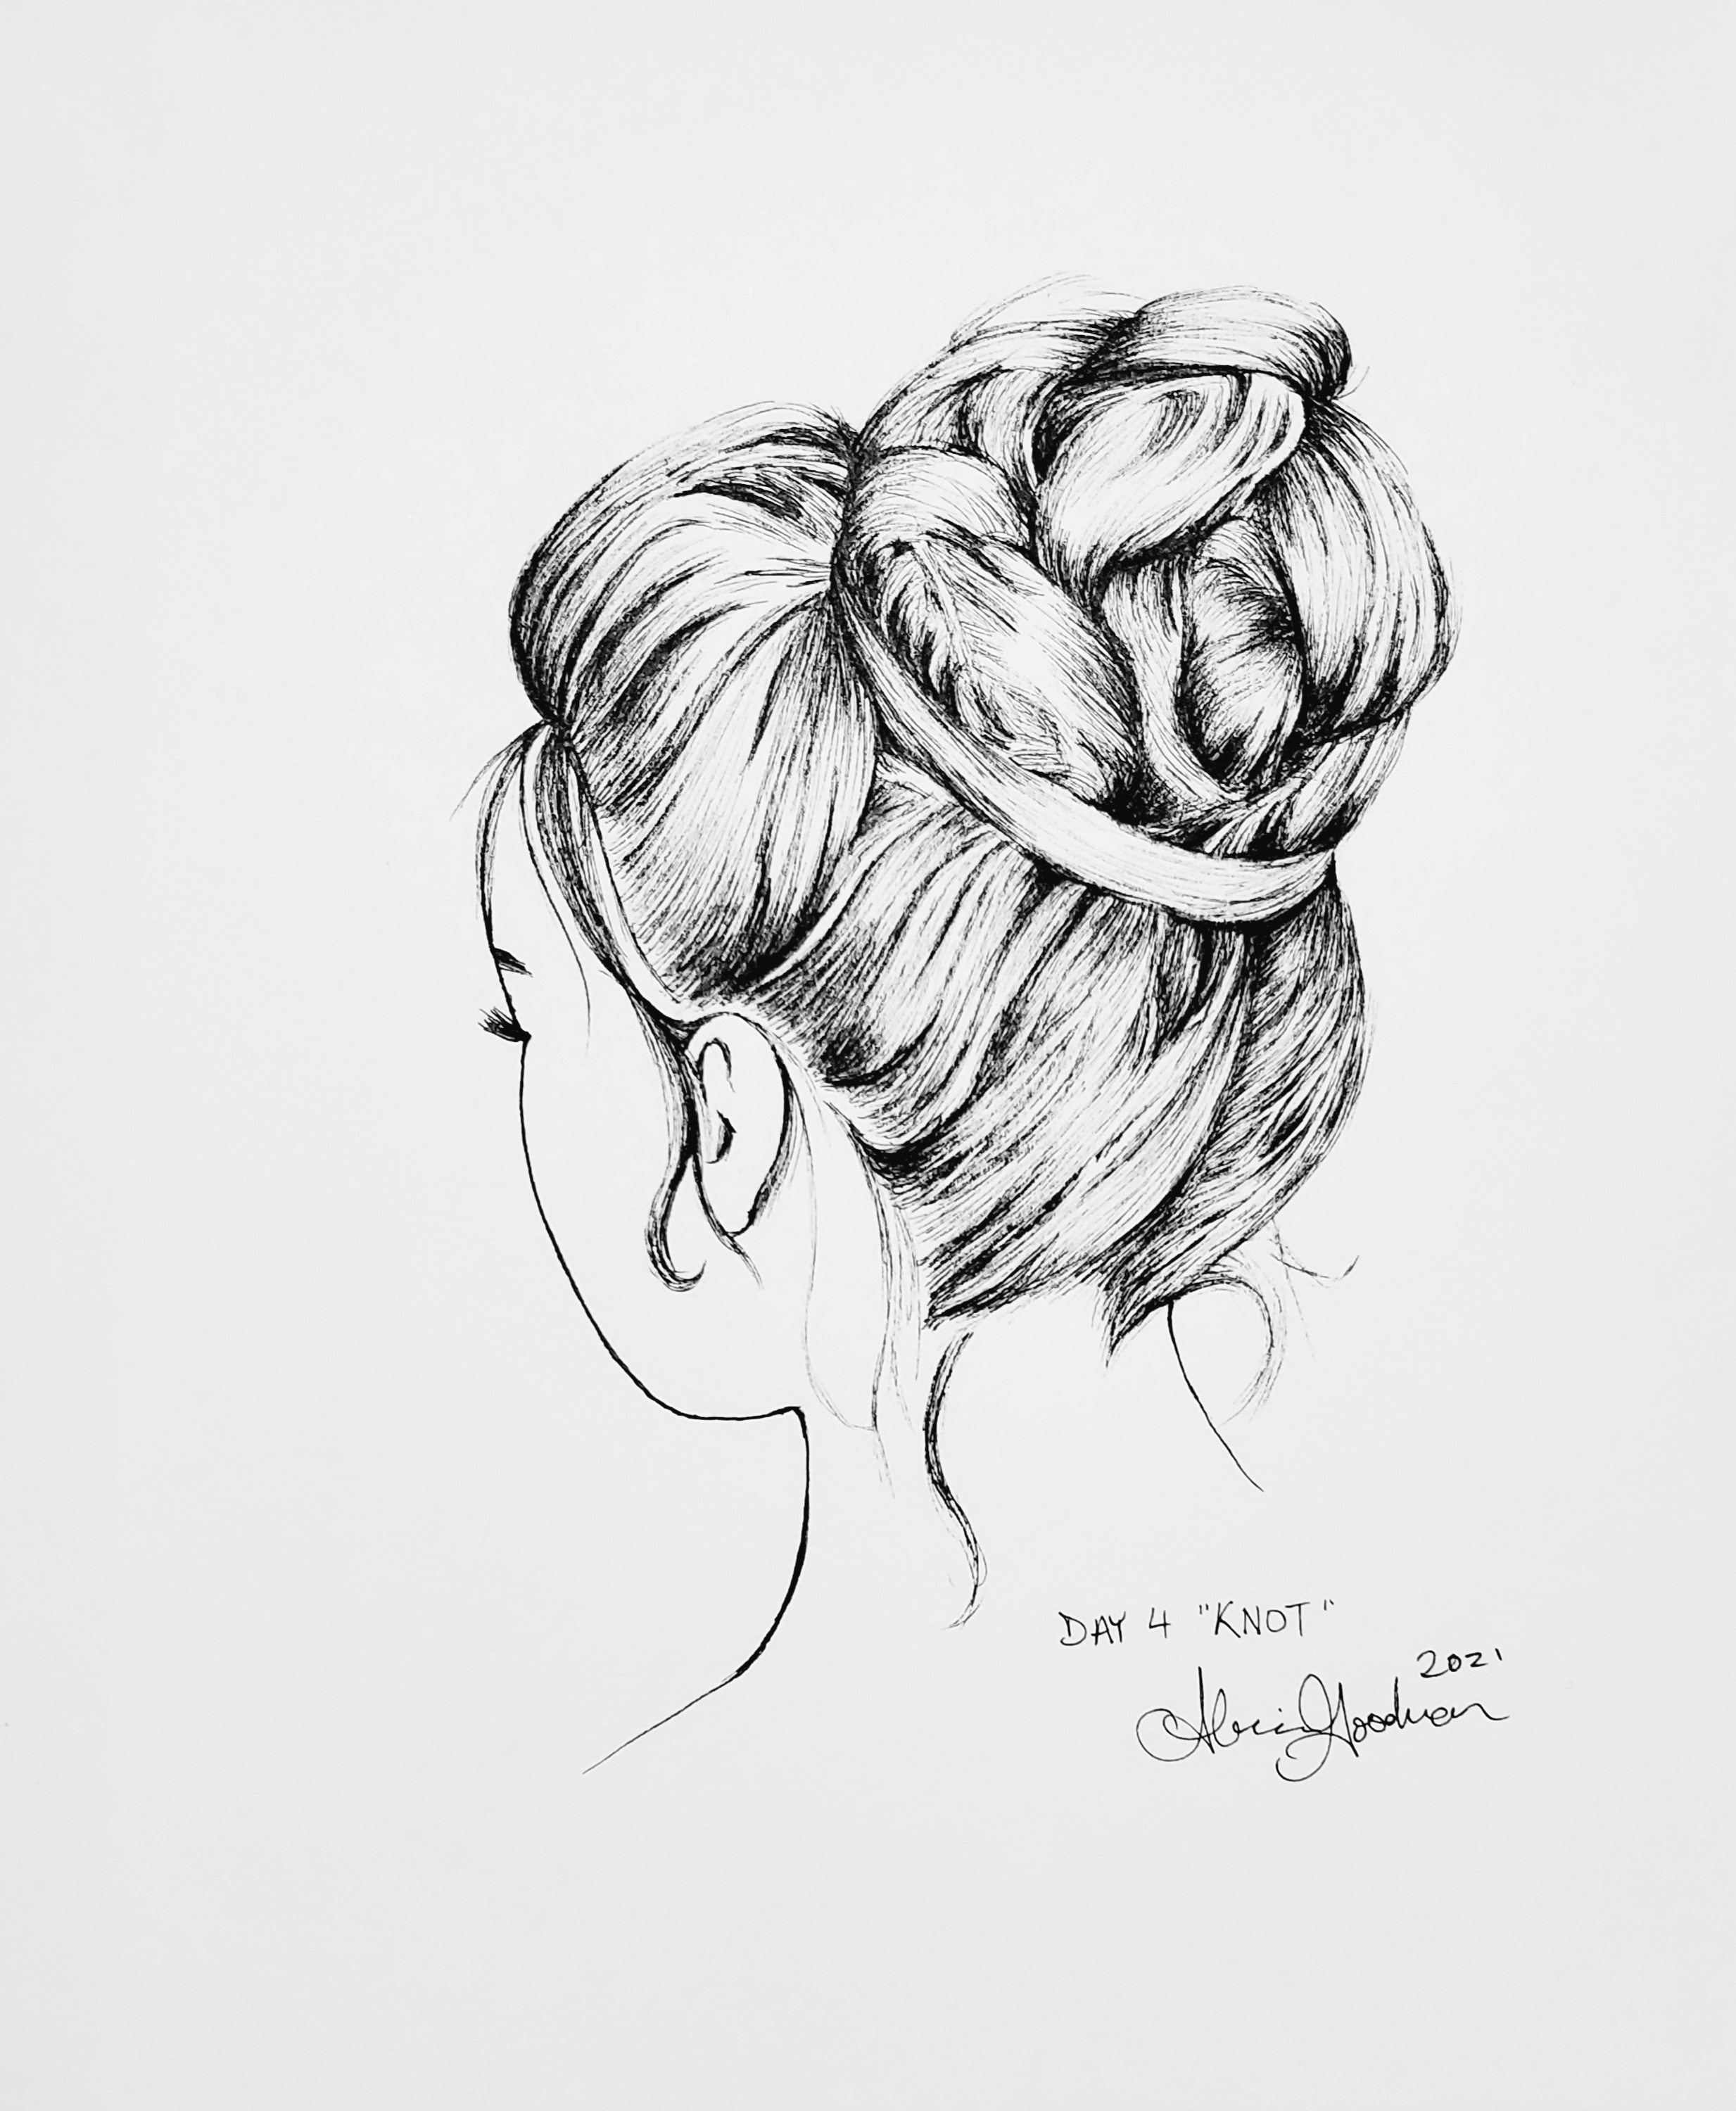 Woman from back with intricate bun ink drawing by alecia goodman copyright 2021 to present